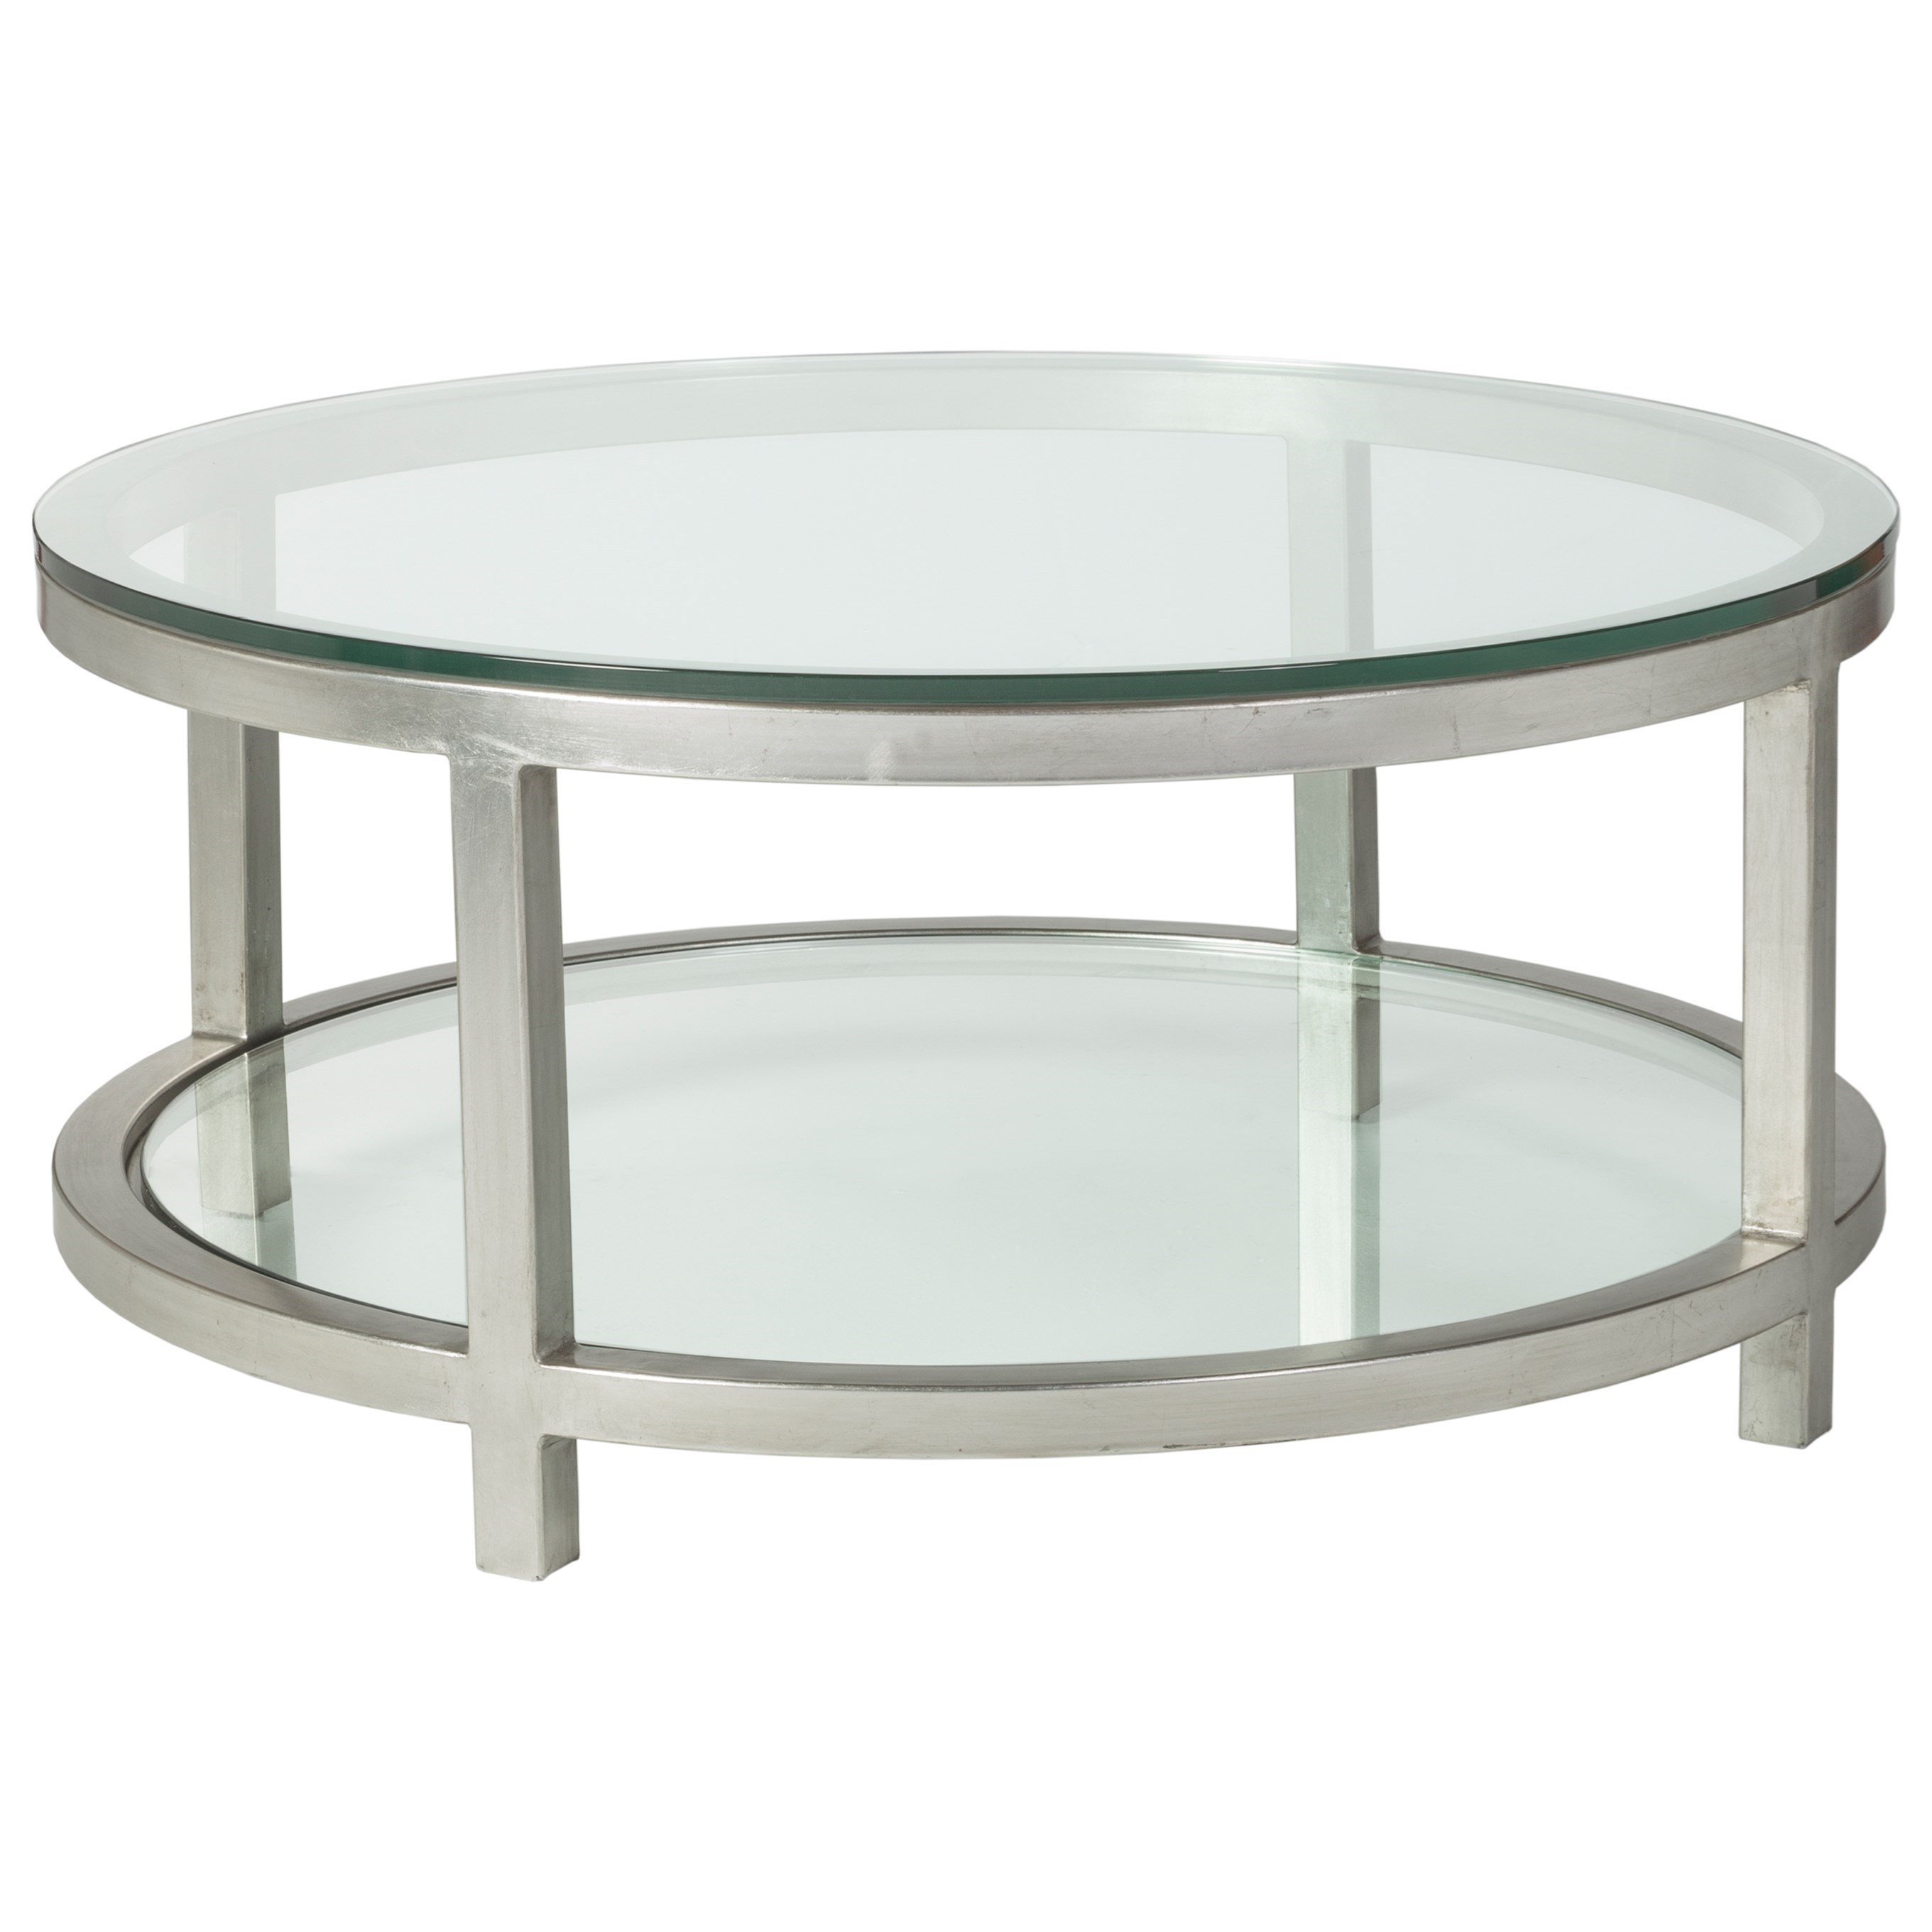 Artistica Metal Per Se Round Cocktail Table by Artistica at Alison Craig Home Furnishings